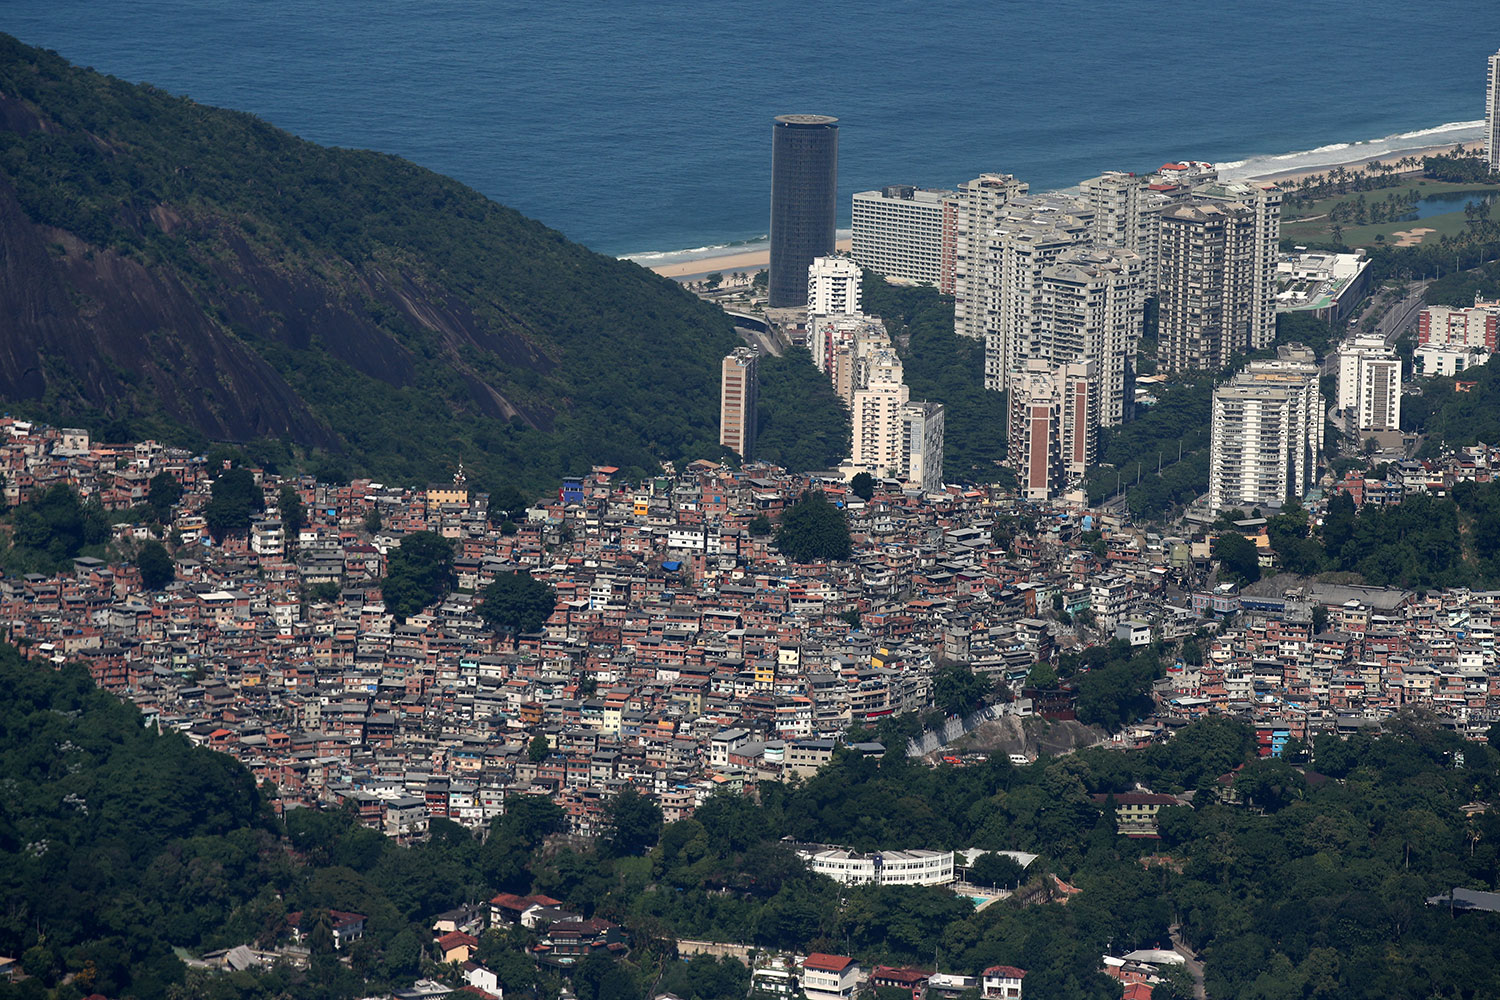 An aerial view of the Rocinha slum in Rio de Janeiro, Brazil on March 26, 2020—during the ongoing crisis over the coronavirus pandemic. The photo is a gorgeous shot taken from the sky showing the slums cascading down the mountain to the coast, which is dotted with modern skyscrapers, and the ocean beyond. REUTERS/Ricardo Moraes